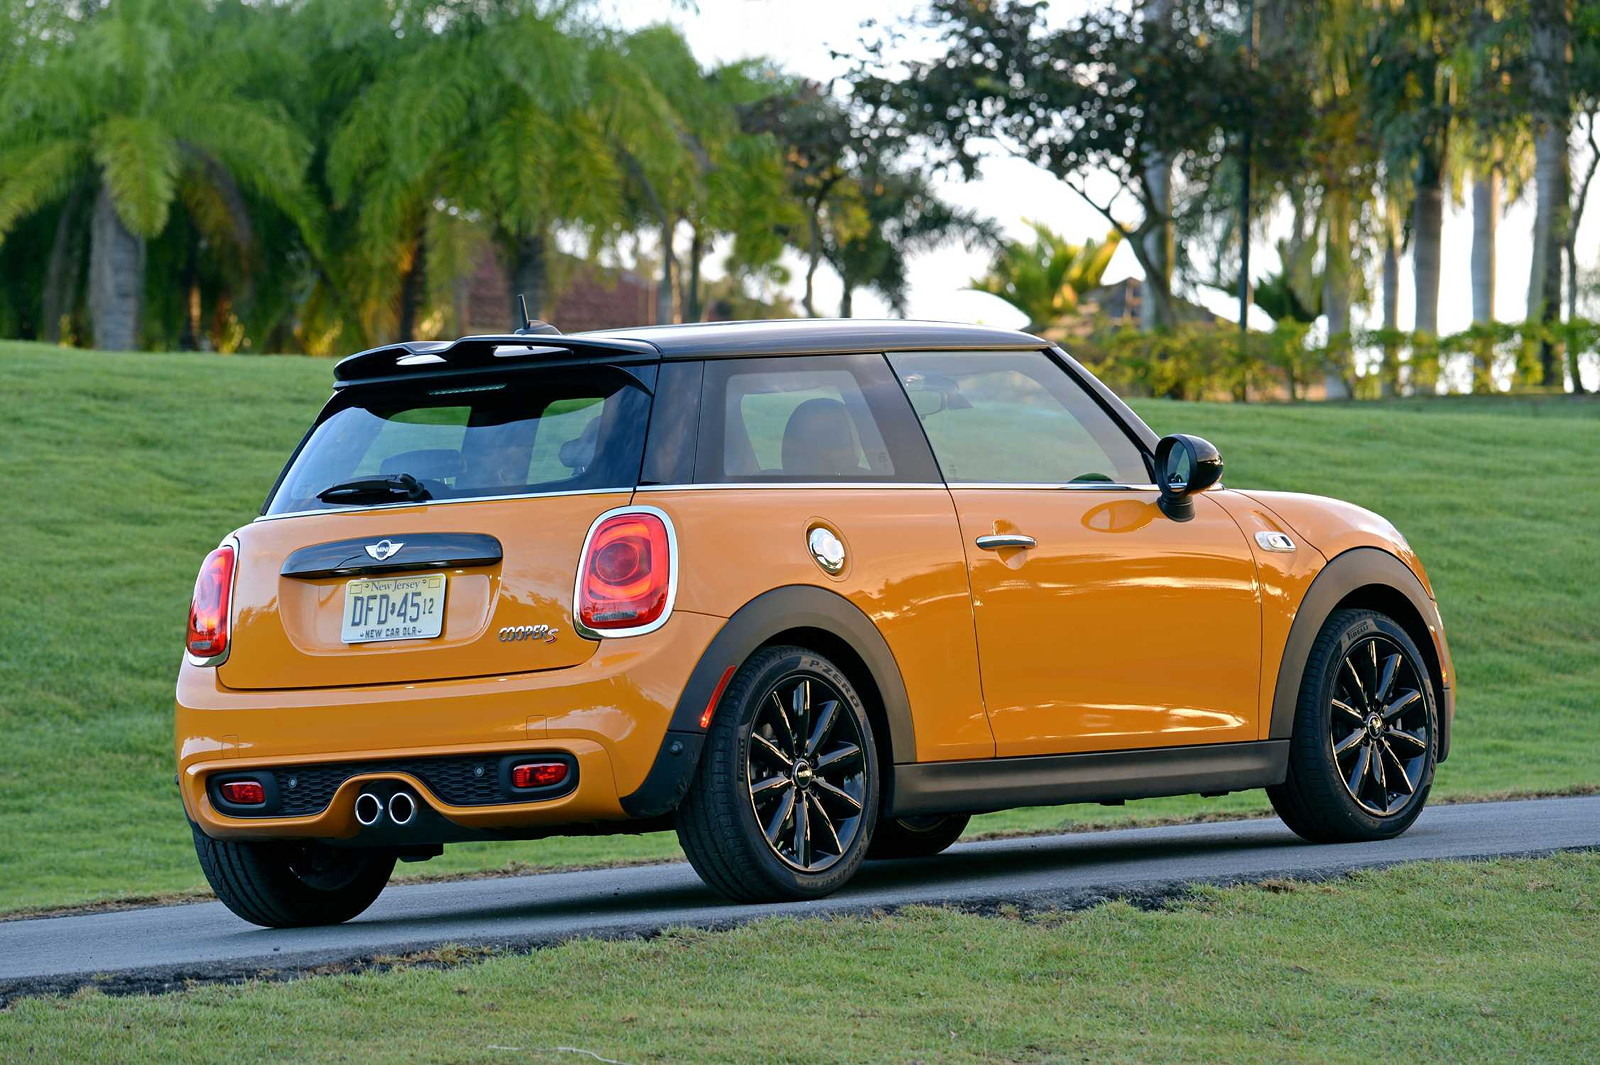 foto mini cooper s f56 in volcanic orange on location in puerto rico vergr ert. Black Bedroom Furniture Sets. Home Design Ideas